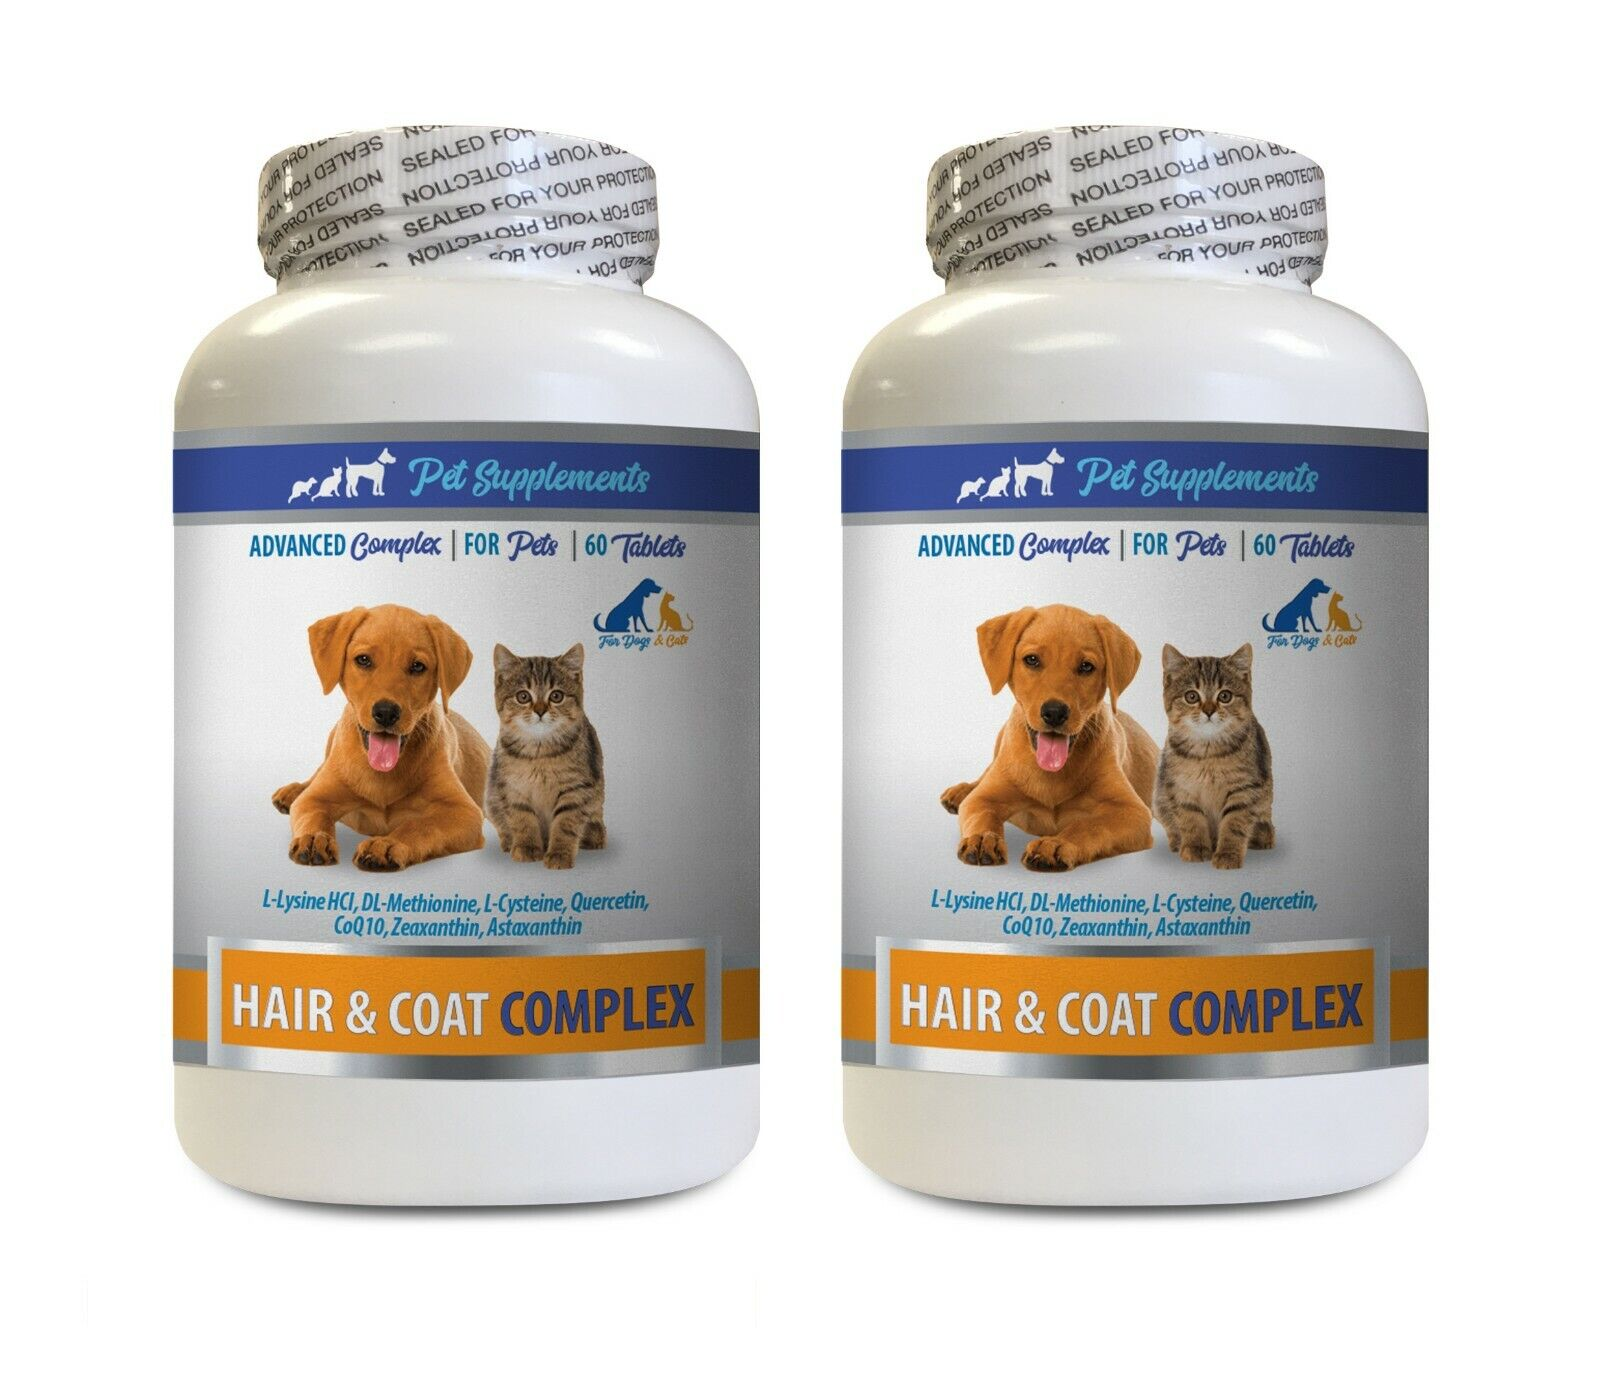 Dog skin itch relief - PETS HAIR AND COAT COMPLEX 2B - dog vitamin b complex